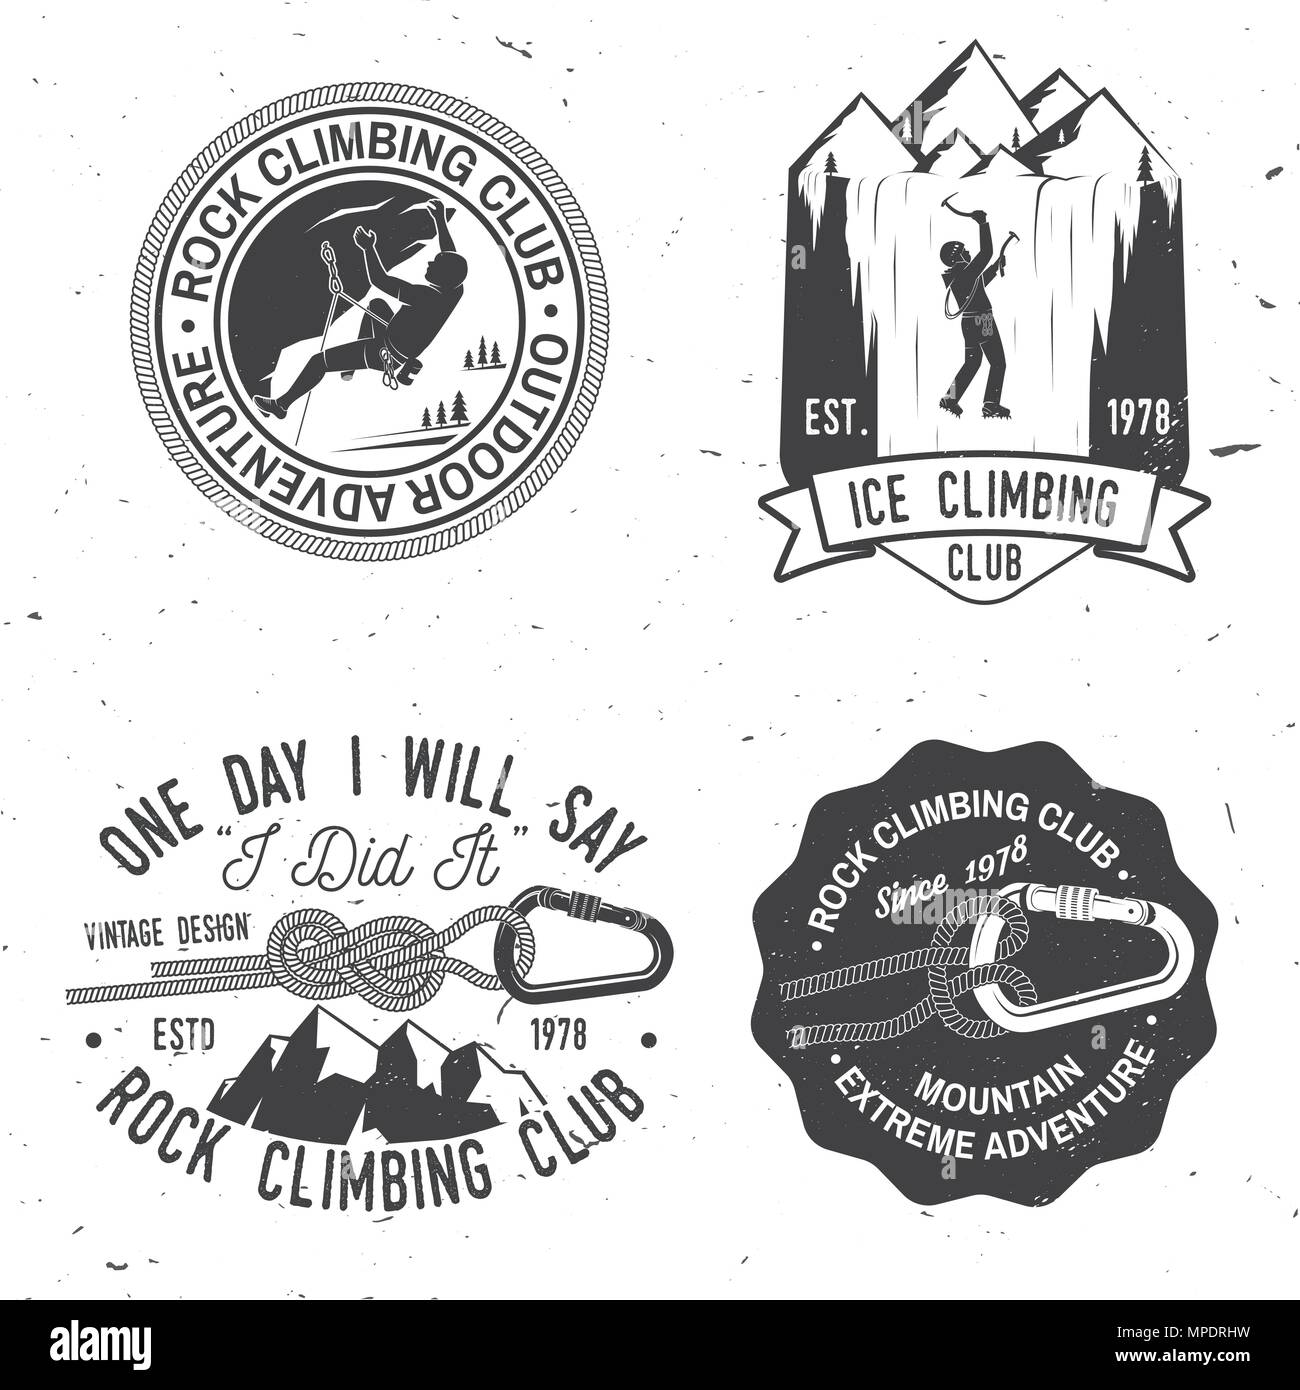 Set Of Rock Climbing Club Badges Vector Illustration Concept For Shirt Or Print Stamp Or Tee Vintage Typography Design With Climber Carabiner And Stock Vector Image Art Alamy